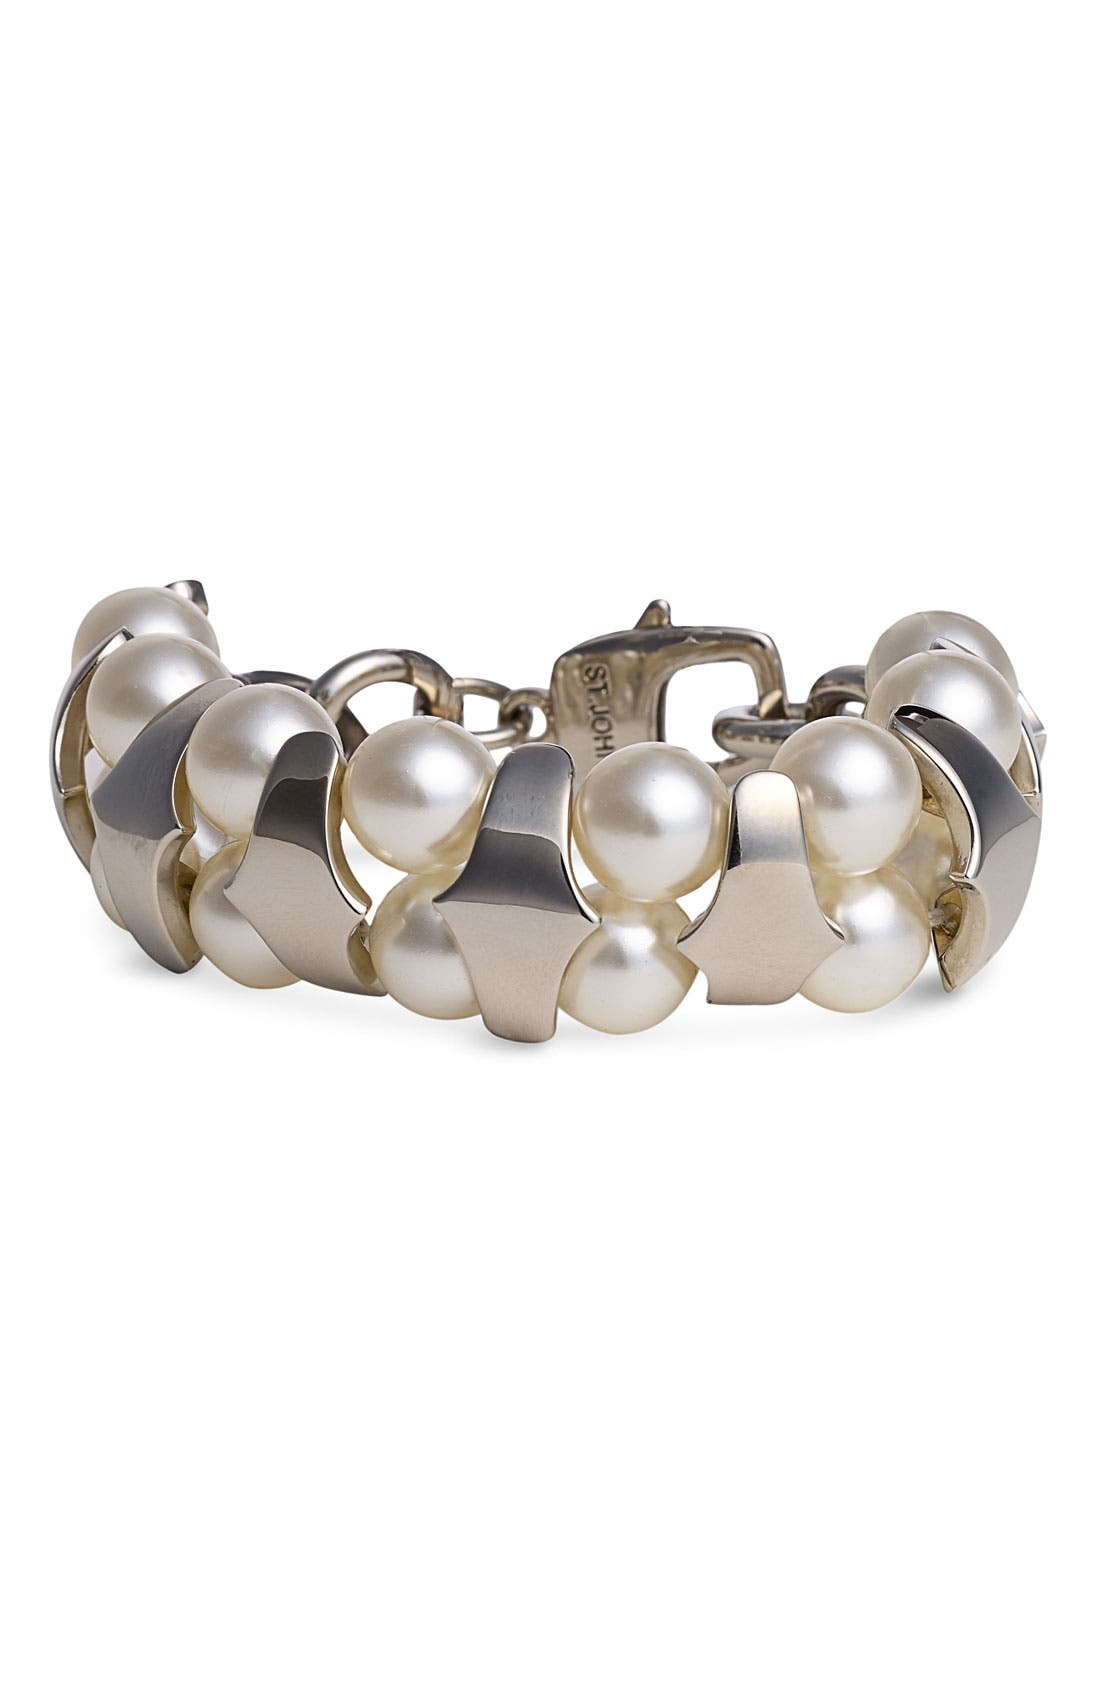 Main Image - St. John Collection Chain Link Bracelet with Acrylic Pearls